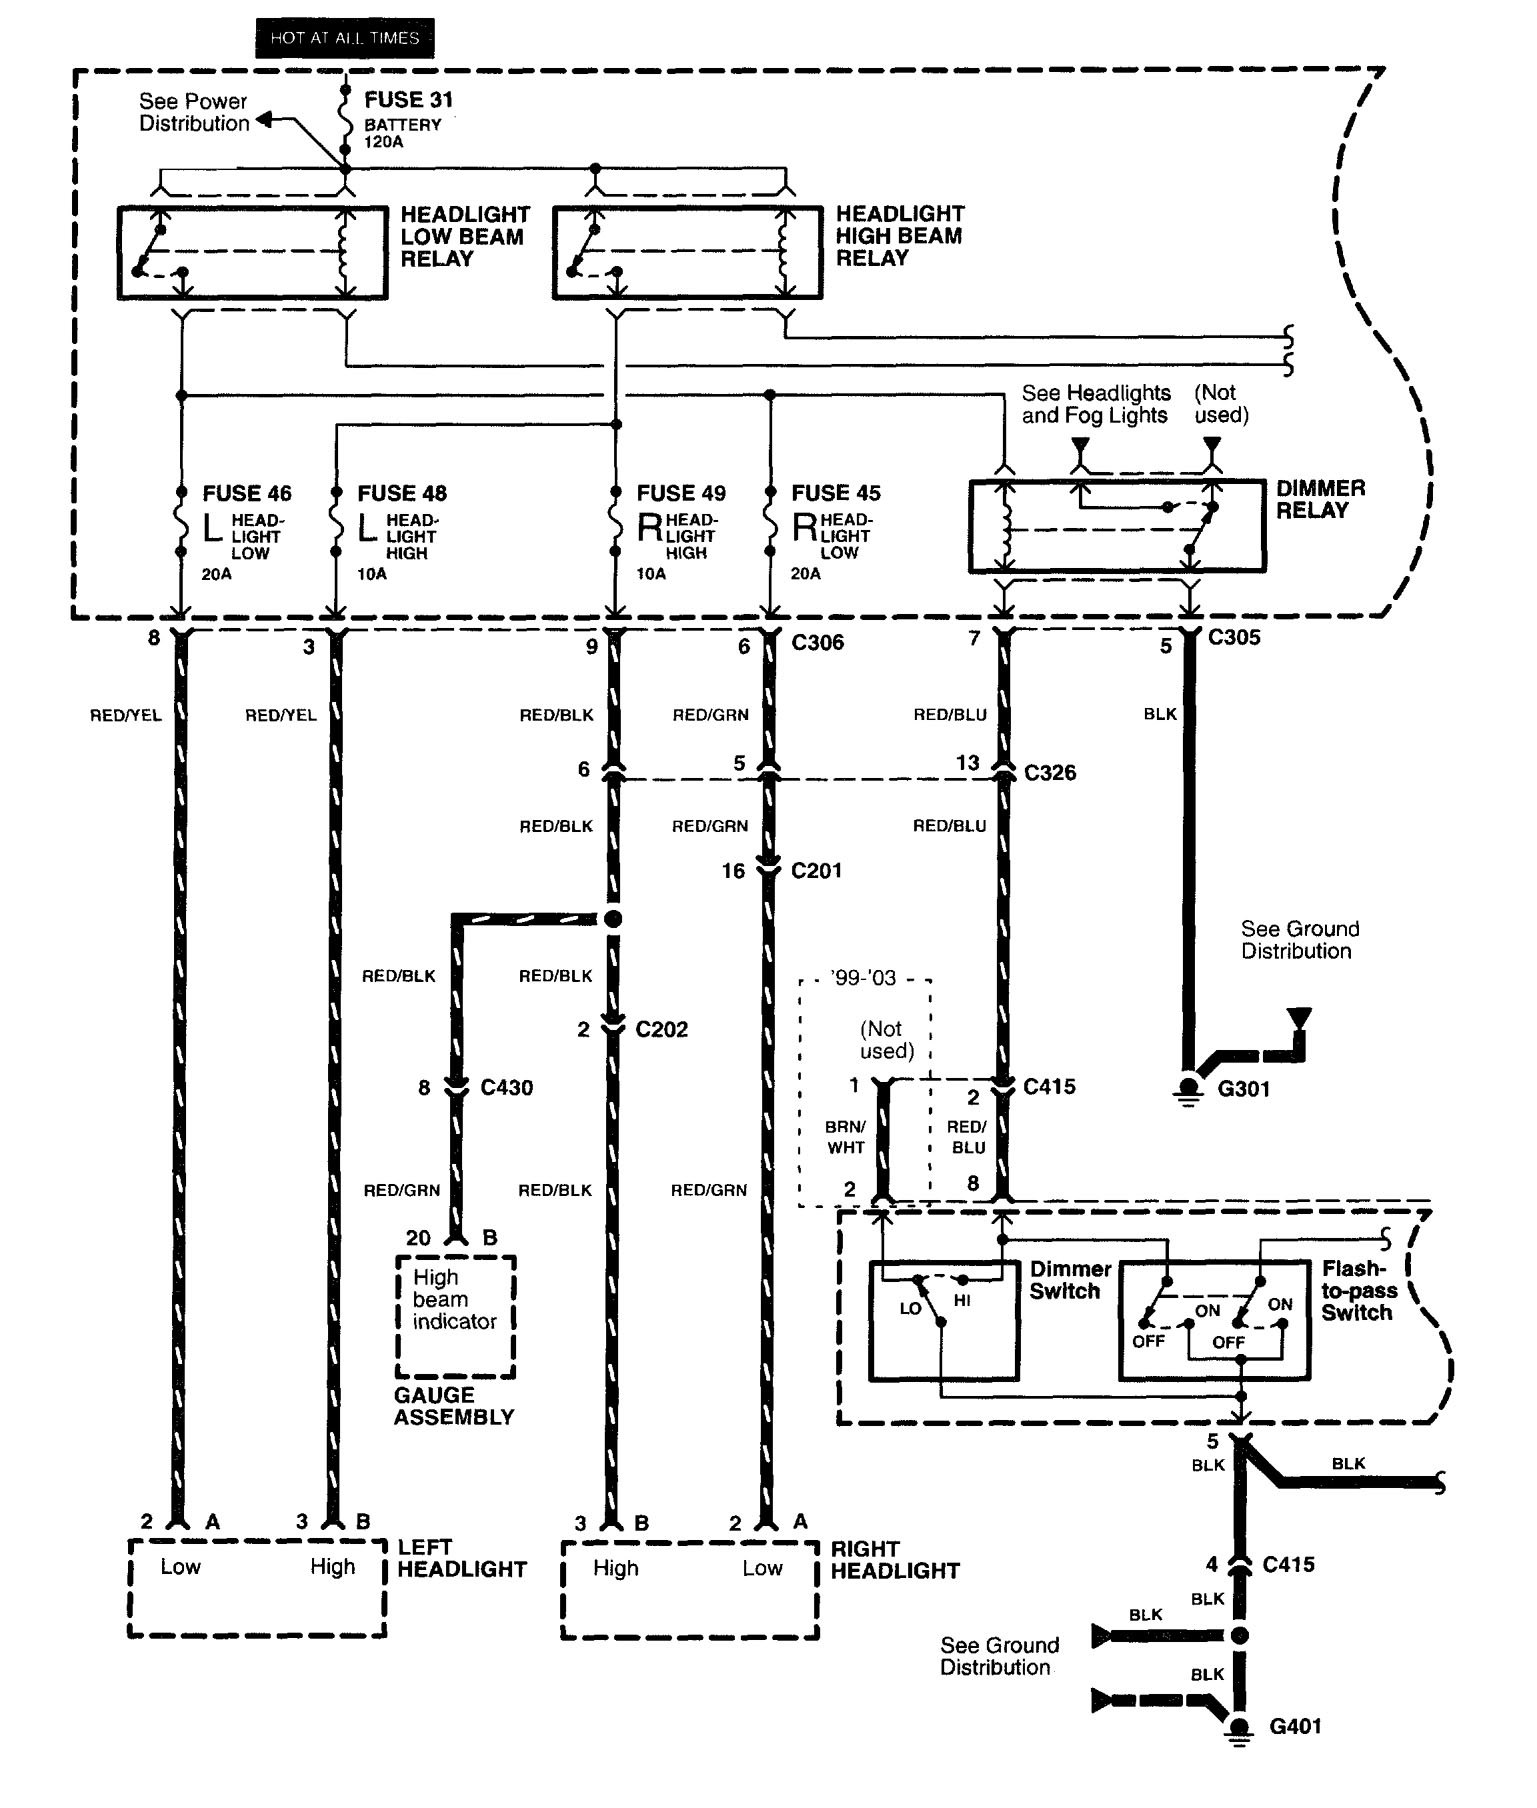 hight resolution of 03 acura cl wiring diagram 26 wiring diagram images allison 1000 transmission diagram 4l60e transmission wiring connector diagram